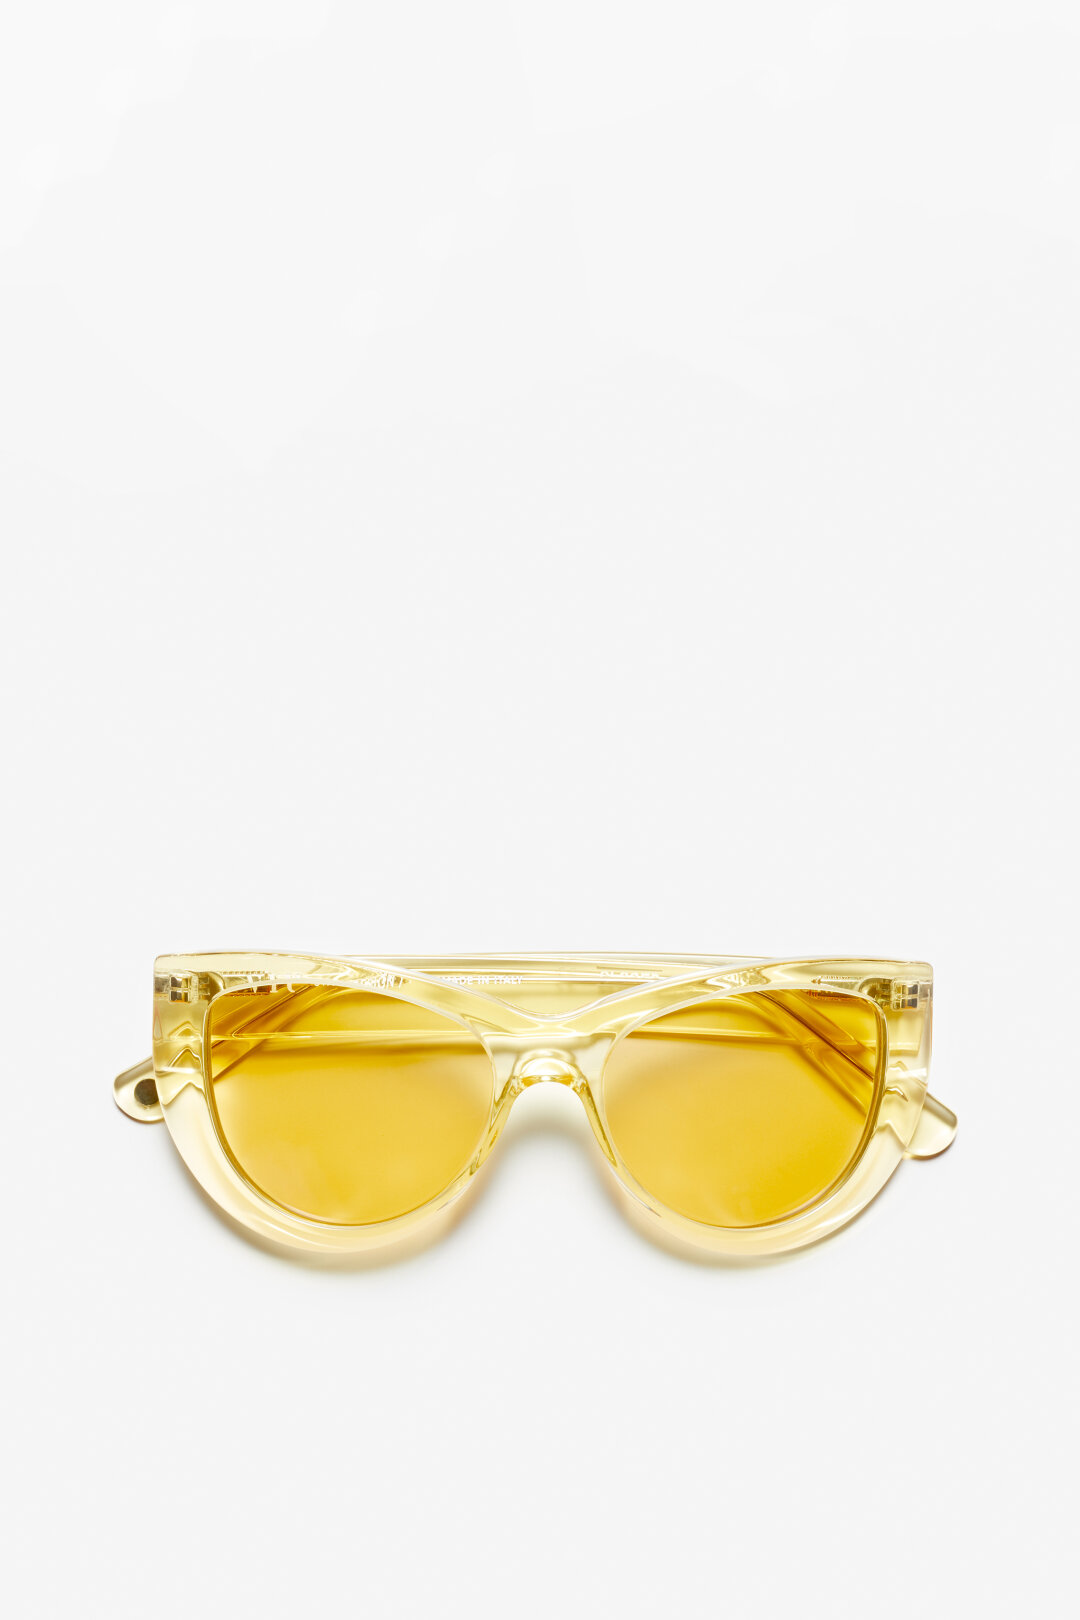 Closed x VIU Lunettes de soleil THE OPTIMISTE